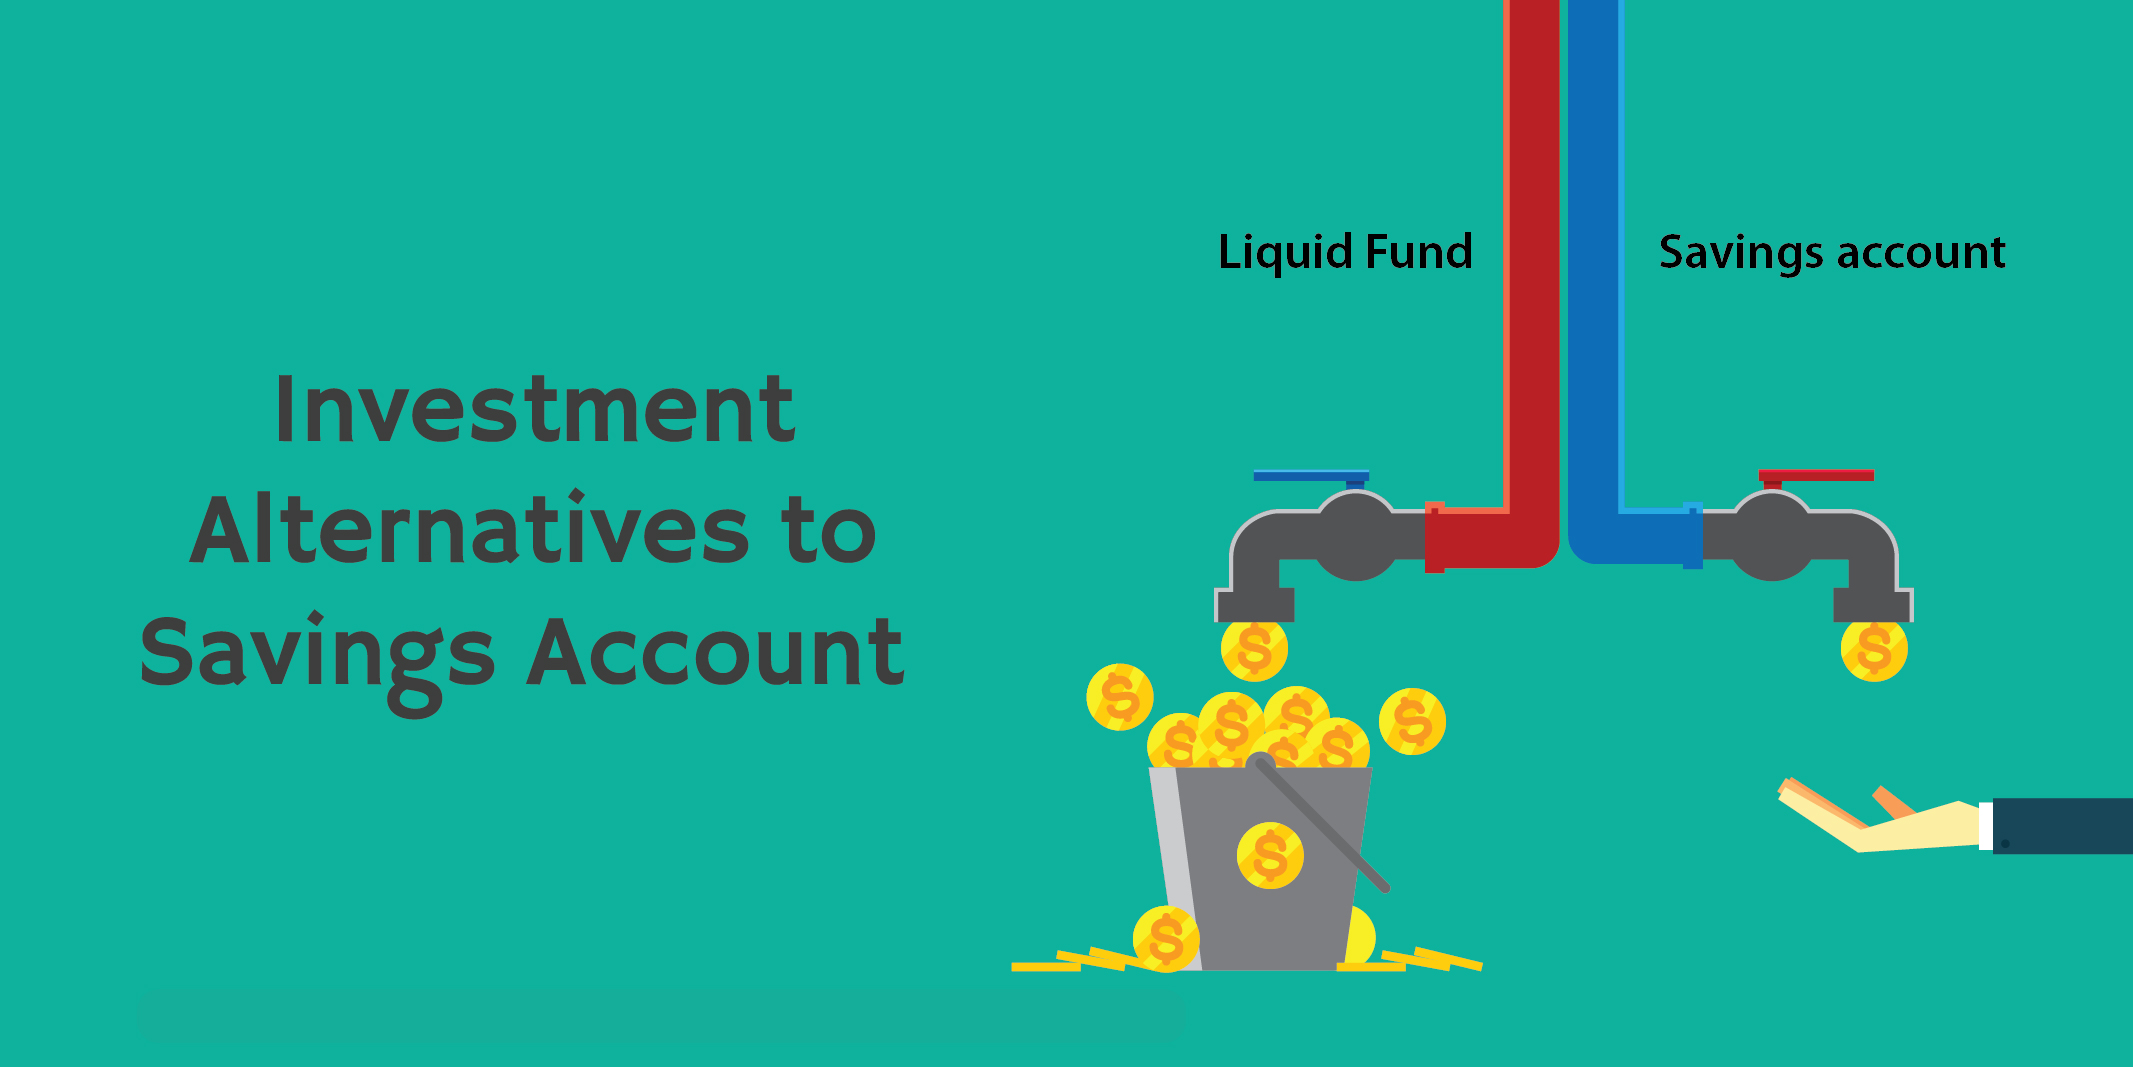 Investment Alternatives to Savings Account